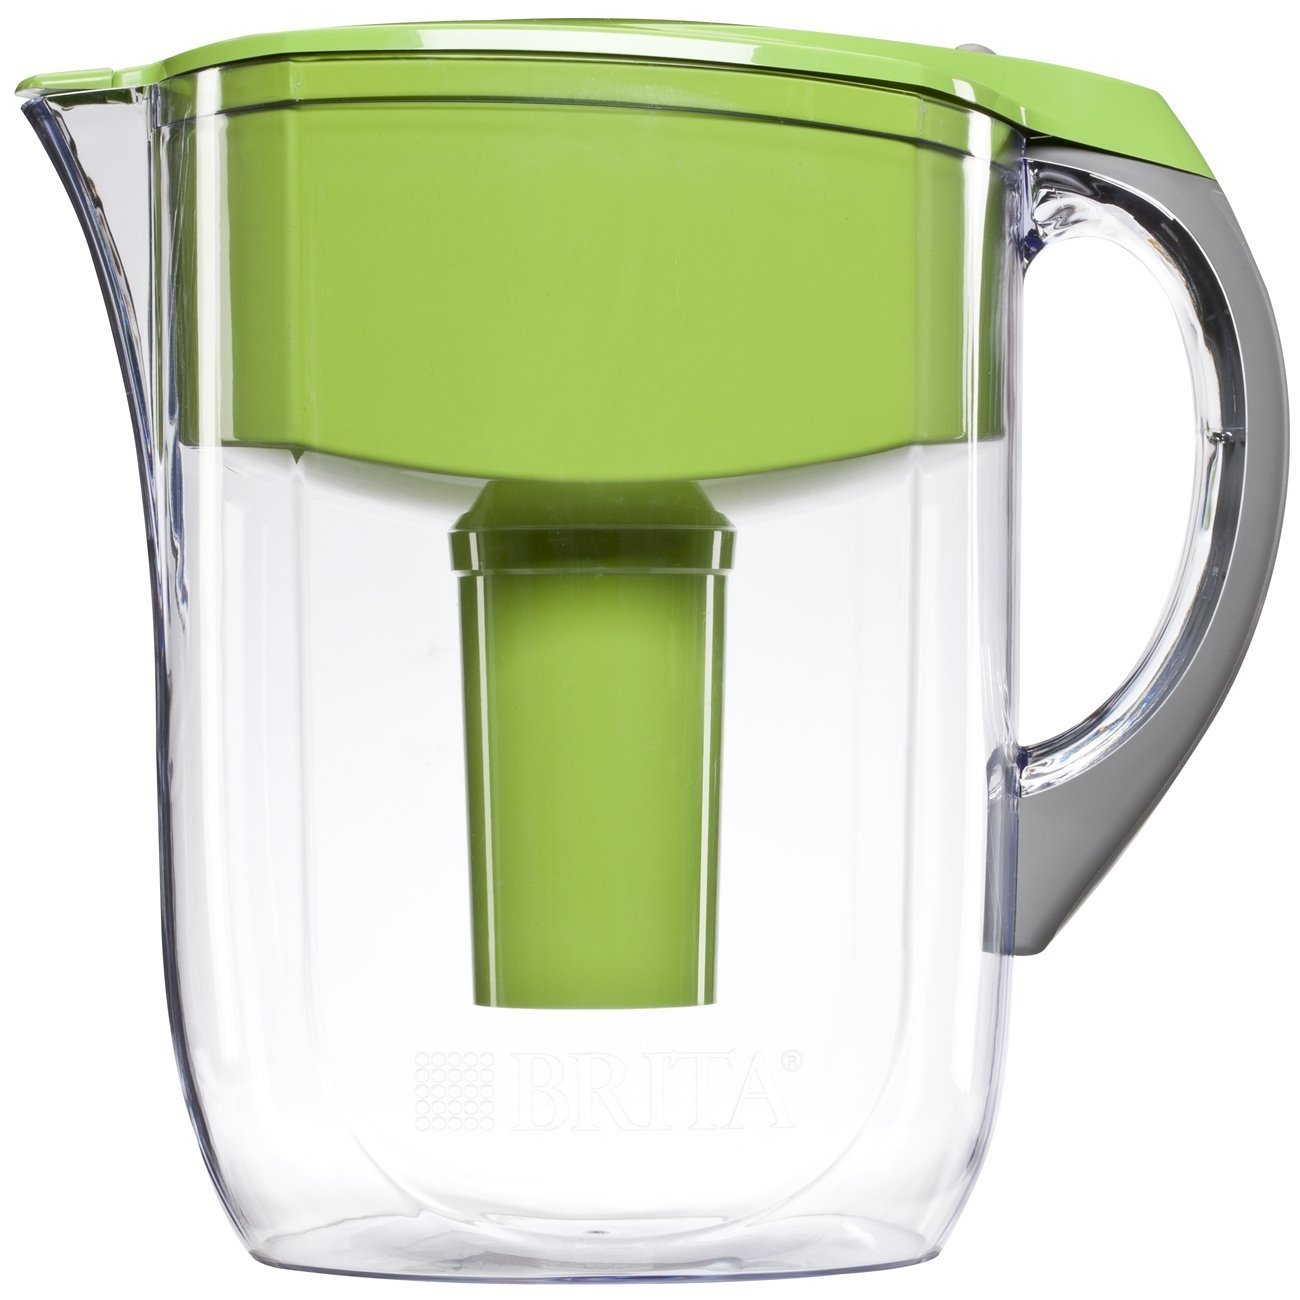 10 Cup Grand Water Pitcher with 1 Filter, BPA Free, Green, Water Count Black Filters Capacity Metro Pacifica Stream Chalk 10 Cup Space Gray Violet Filtration.., By Brita